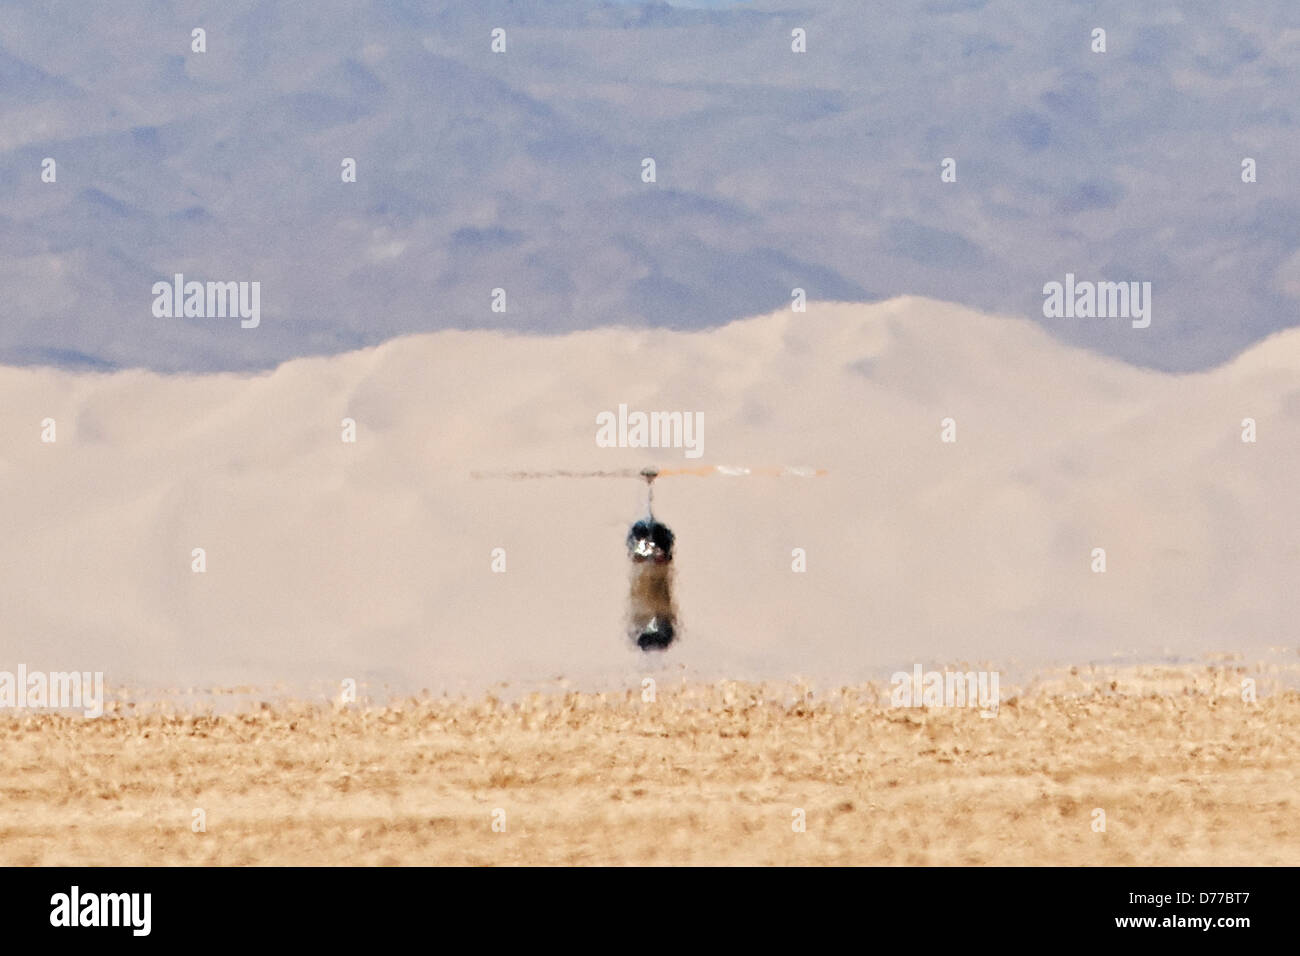 Helicopter Distant Sand Dunes Visually Obscured By Inferior Mirage - Stock Image